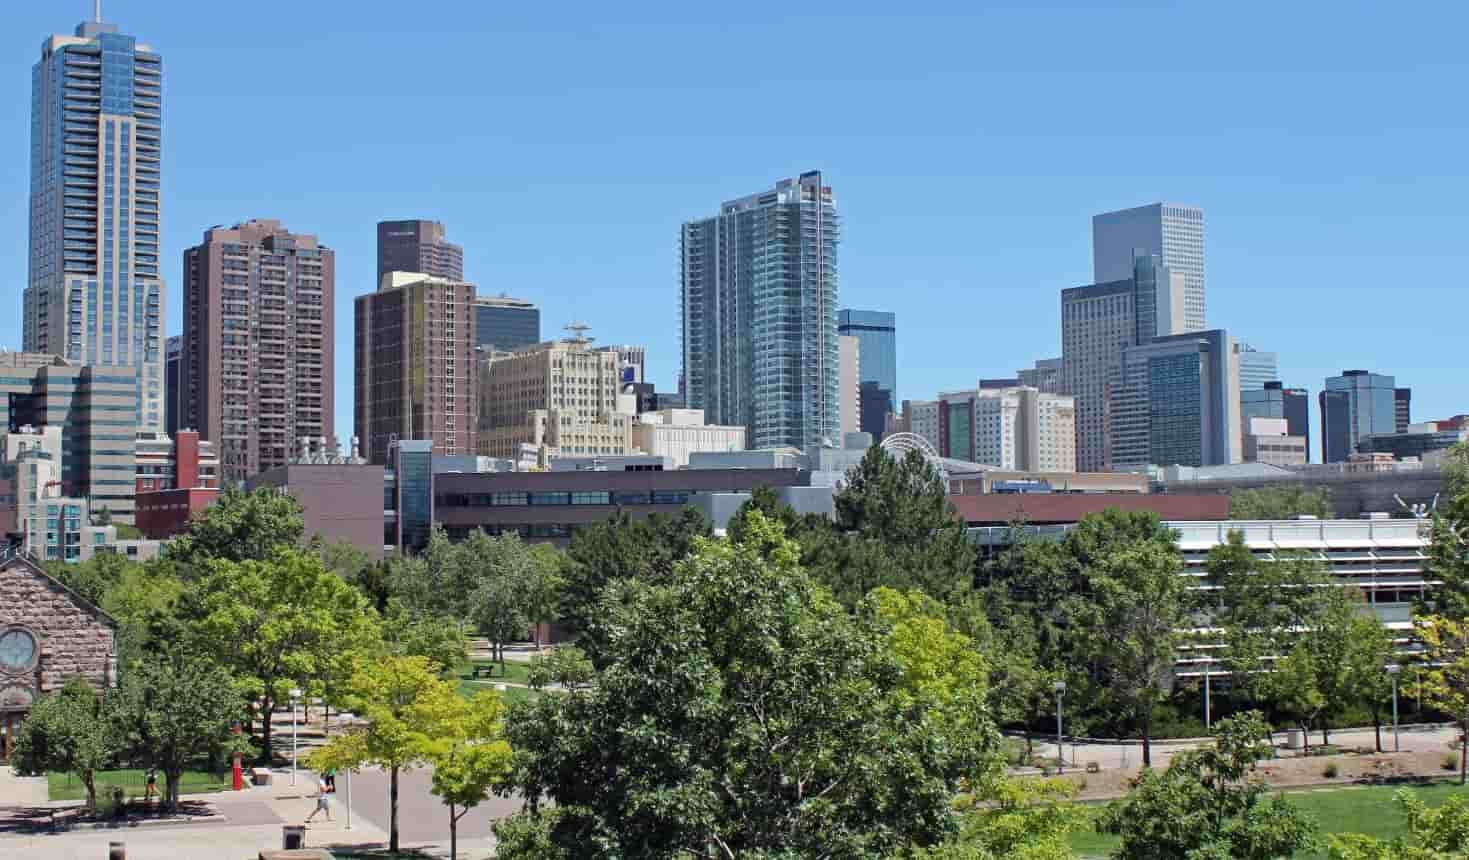 Denver downtown view from a park